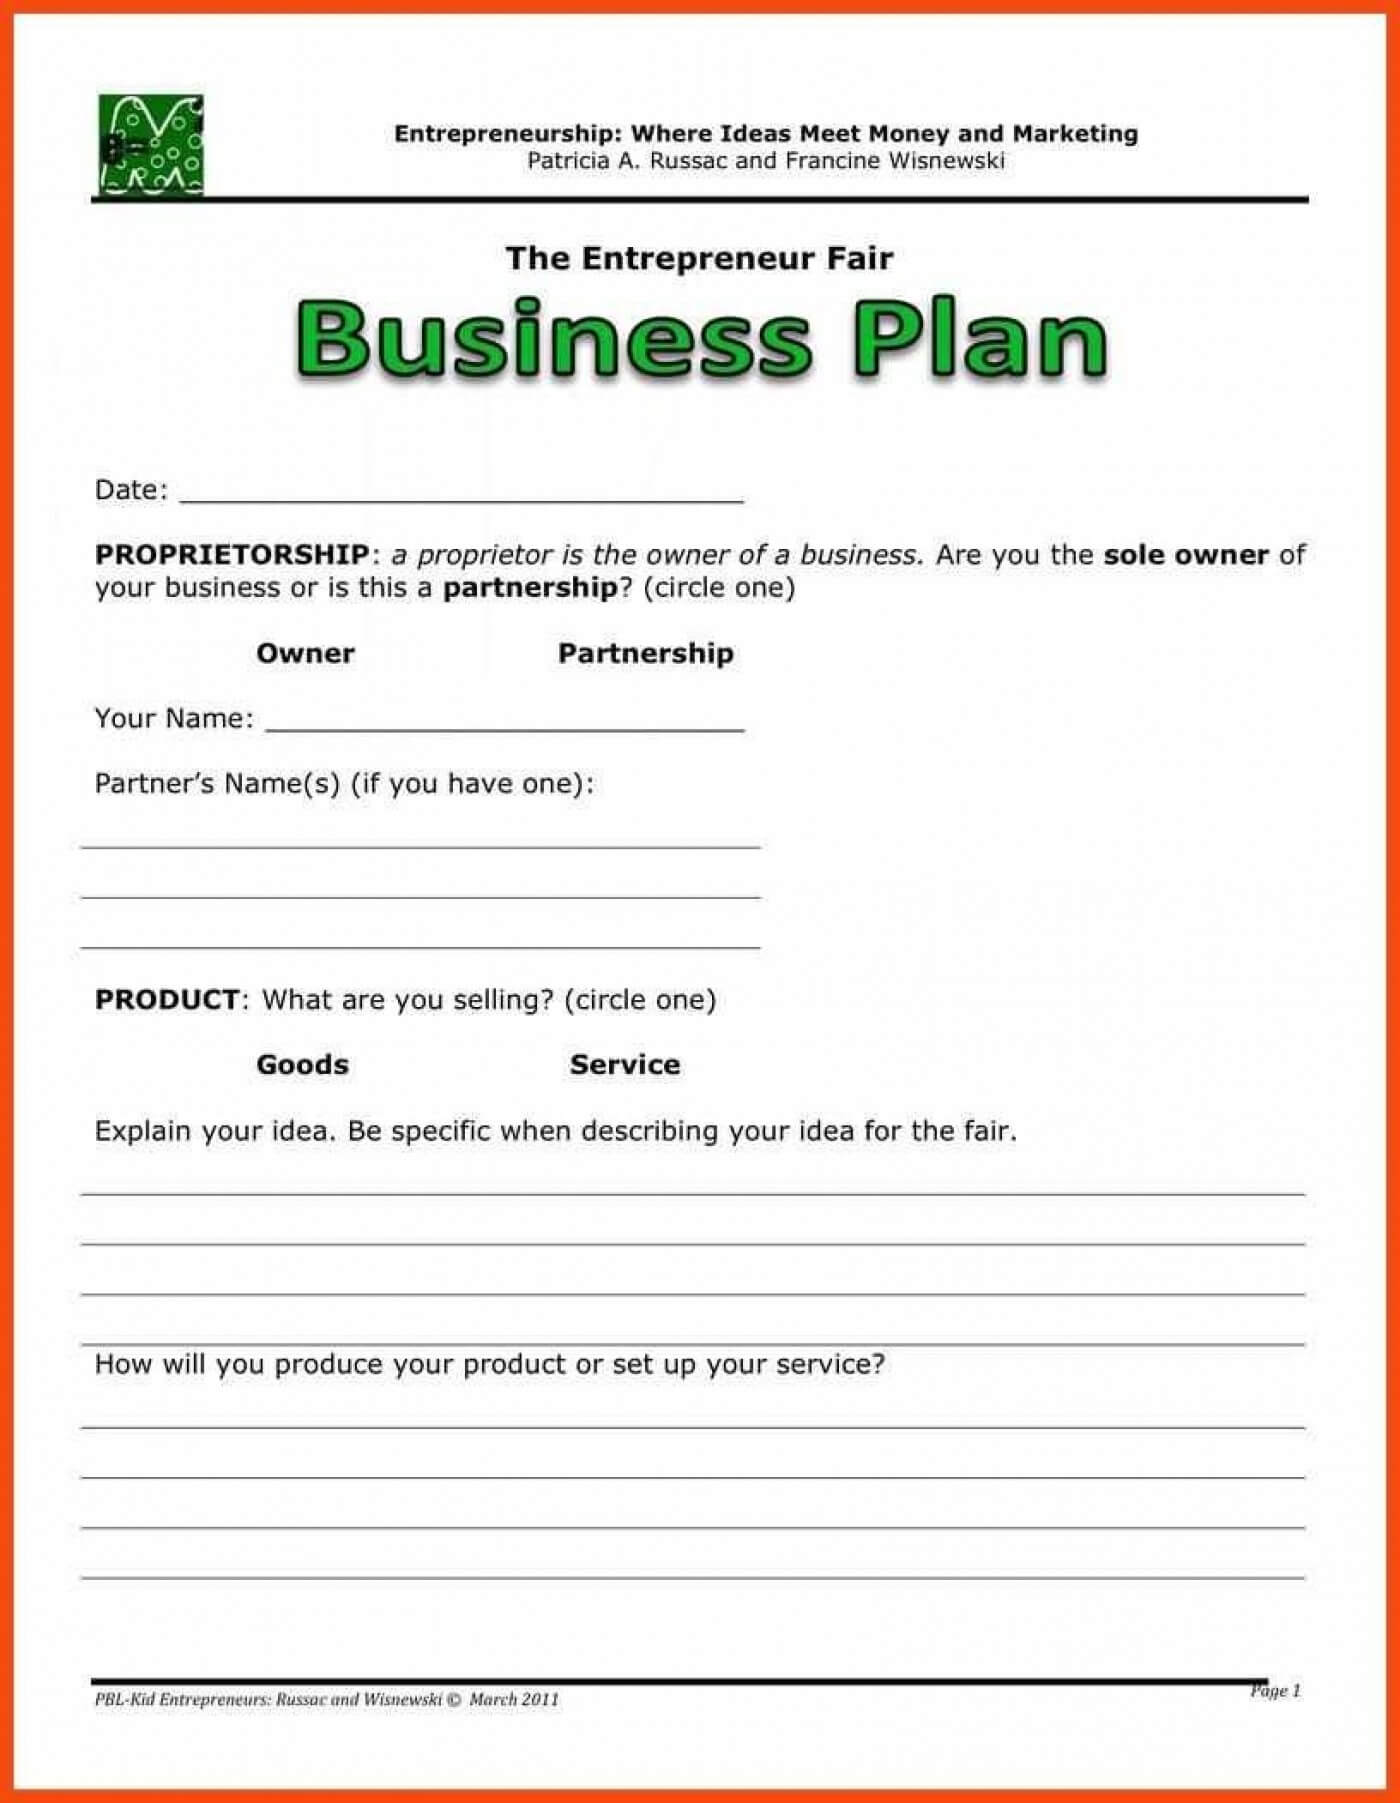 022 Business Plan Template Free Word Download In Business Plan Template Free Word Document